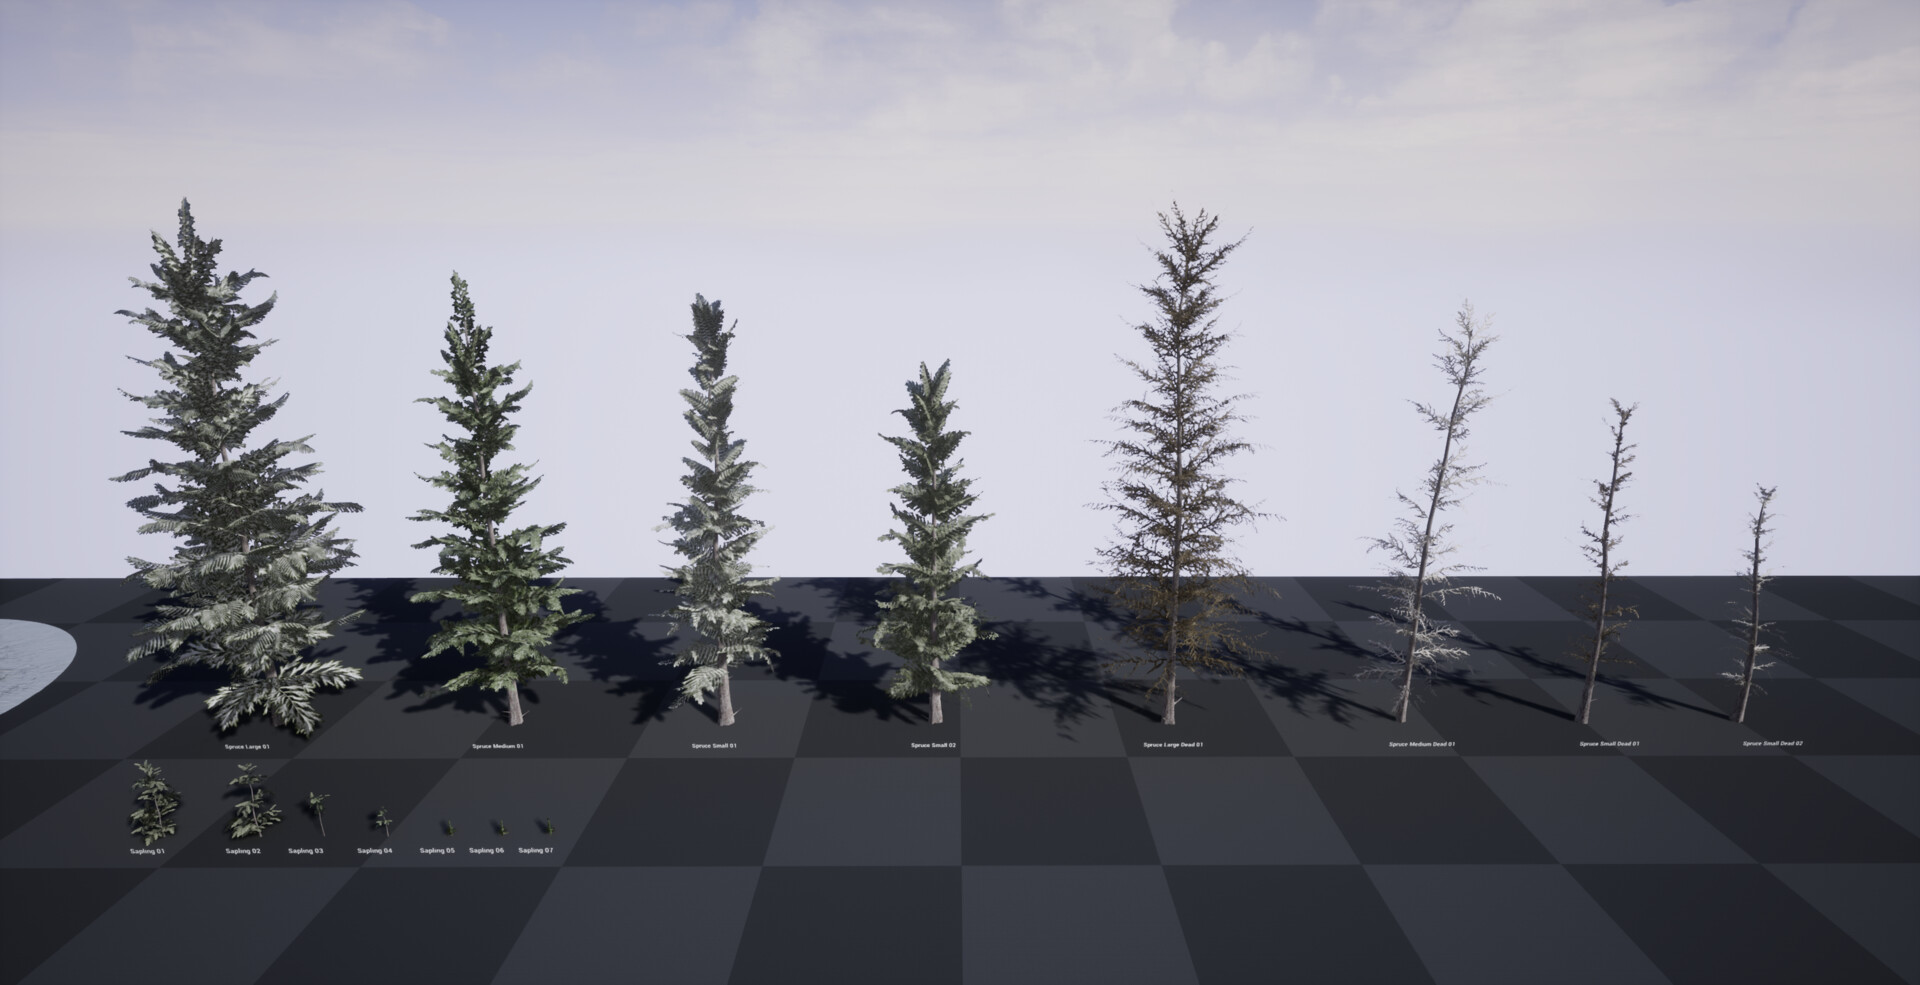 Variety of trees created for the scene.